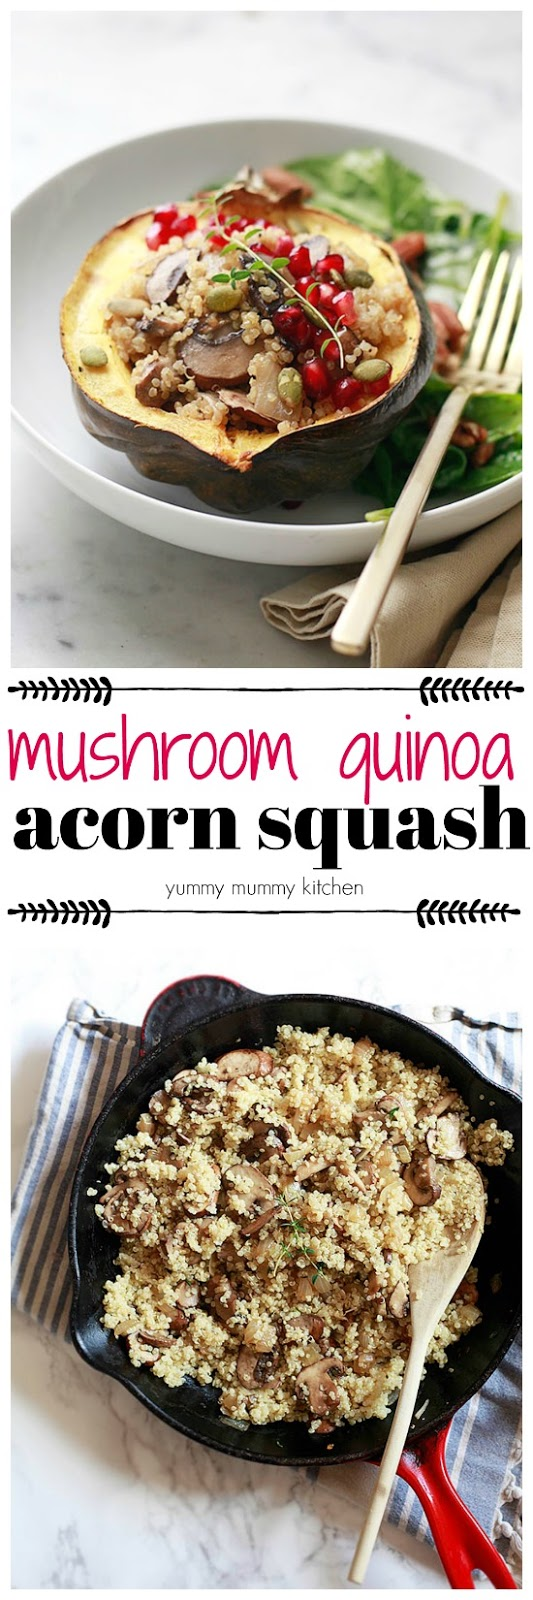 Roasted acorn squash filled with hearty mushroom quinoa makes a delicious vegetarian and vegan autumn dinner perfect for Thanksgiving or any night!